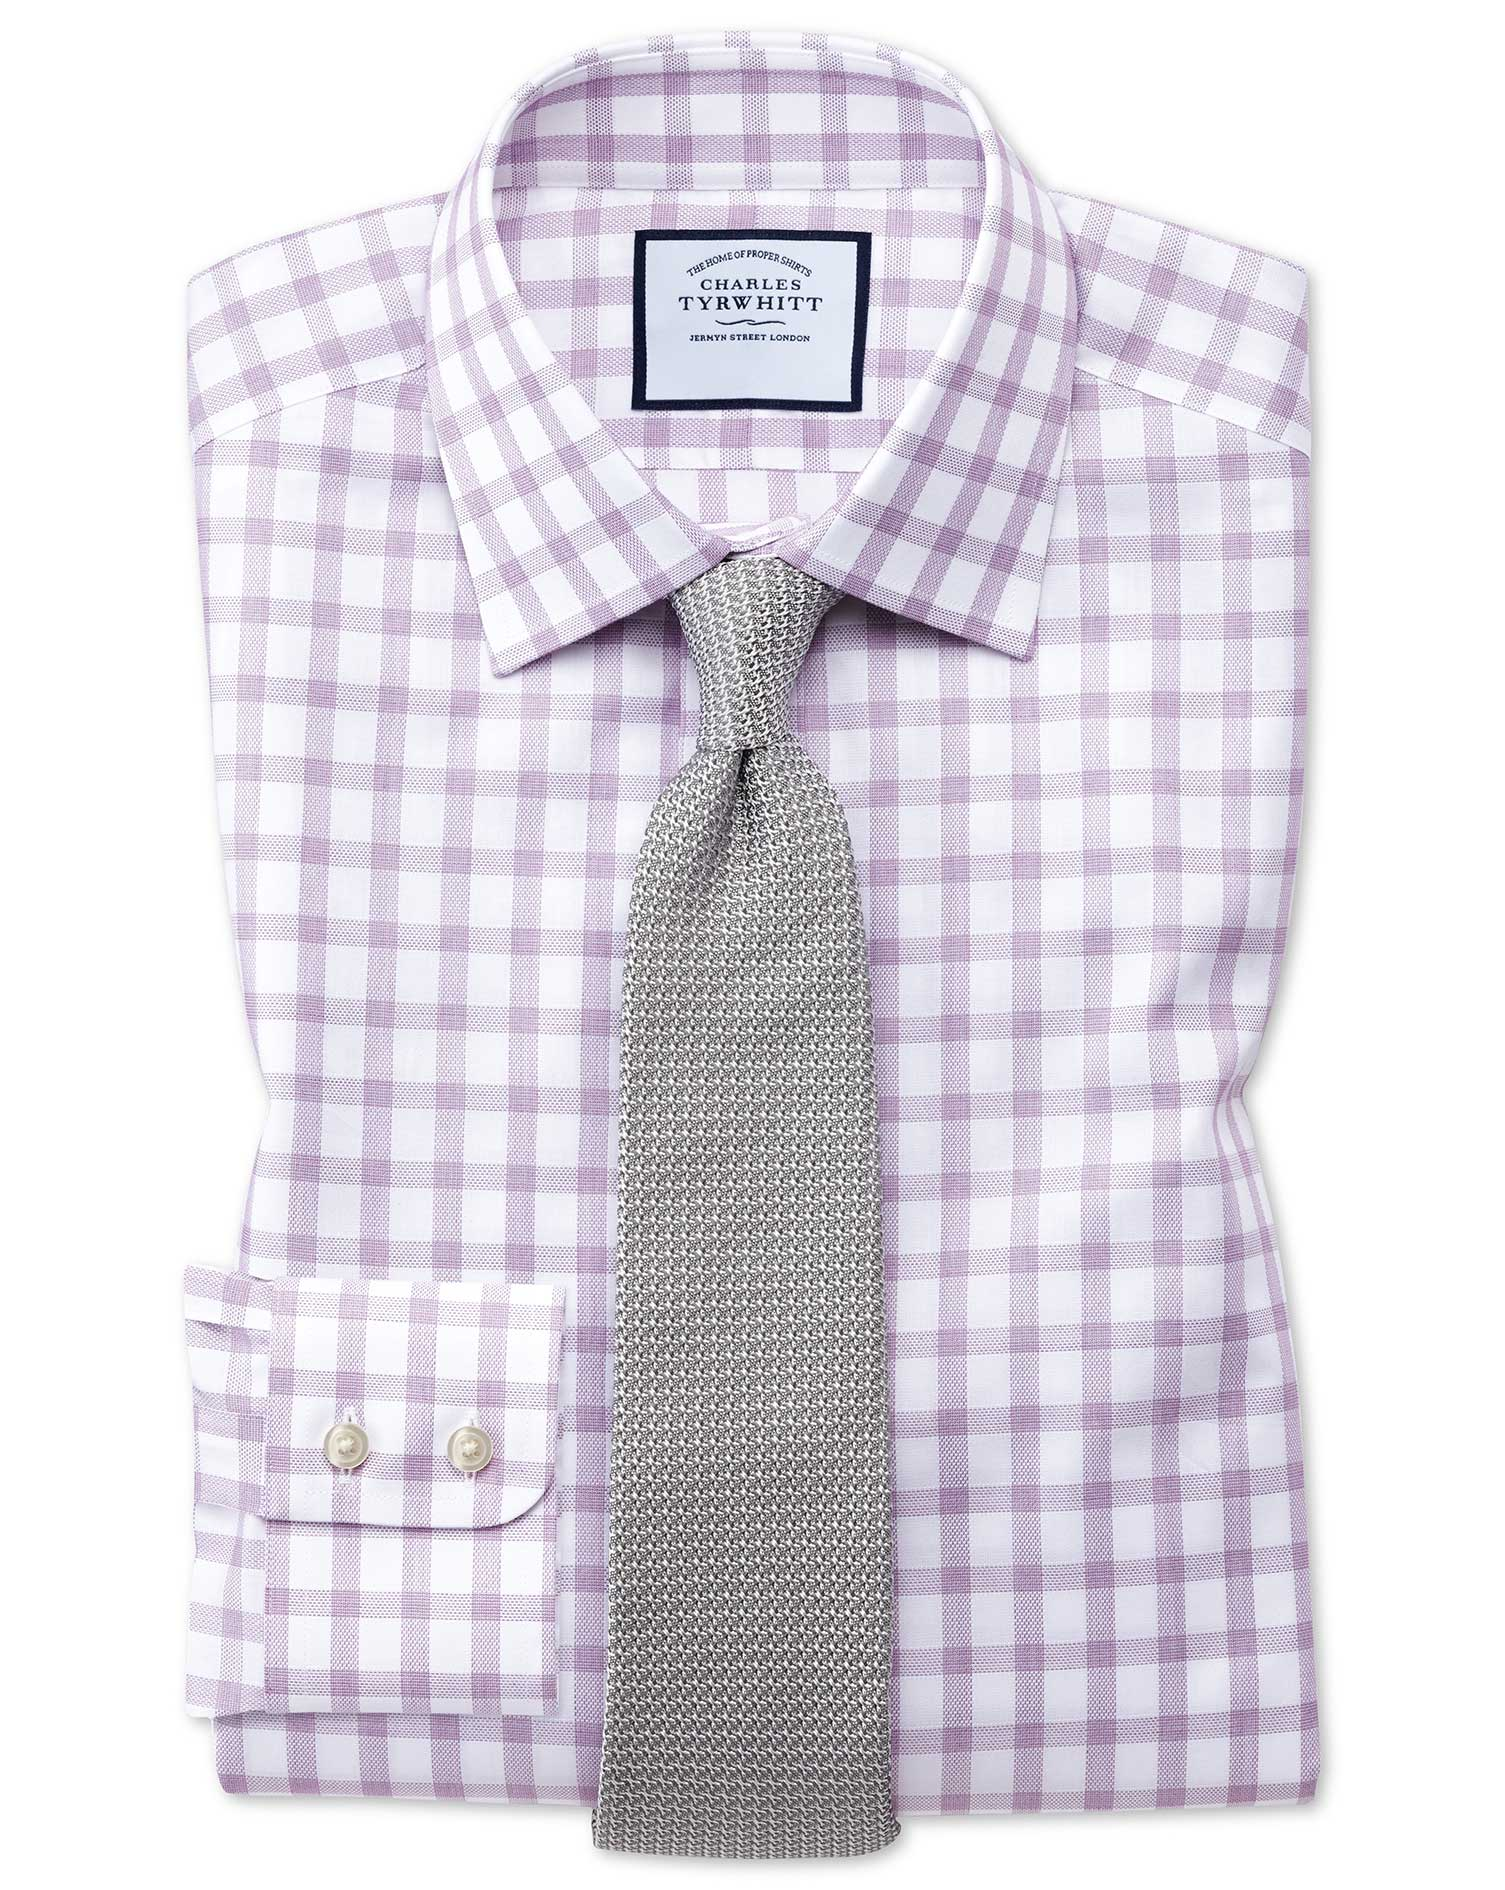 Classic Fit Windowpane Check Purple Cotton Formal Shirt Single Cuff Size 16/36 by Charles Tyrwhitt